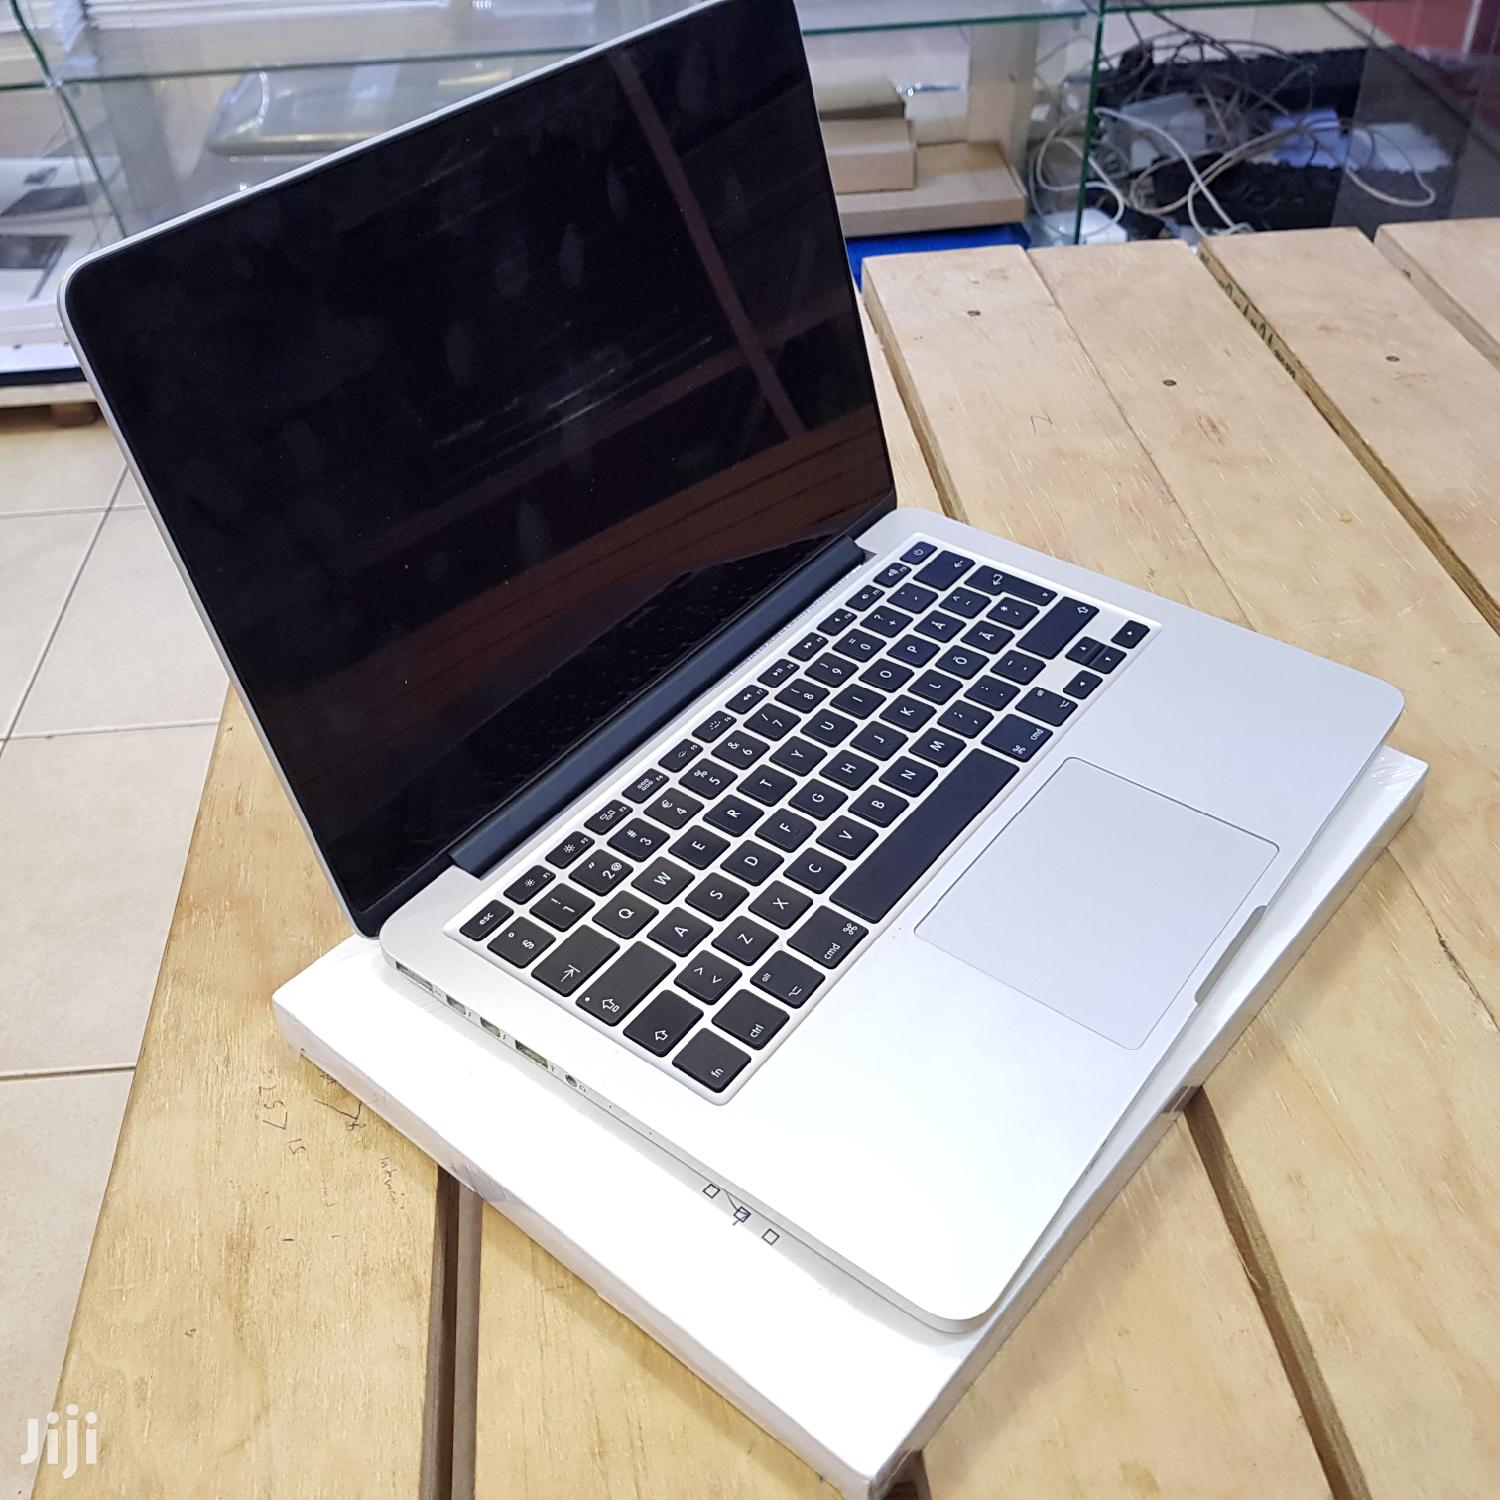 UK Apple Macbook Pro 13 Inches 128Gb Ssd Core I5 8Gb Ram | Laptops & Computers for sale in Kampala, Central Region, Uganda